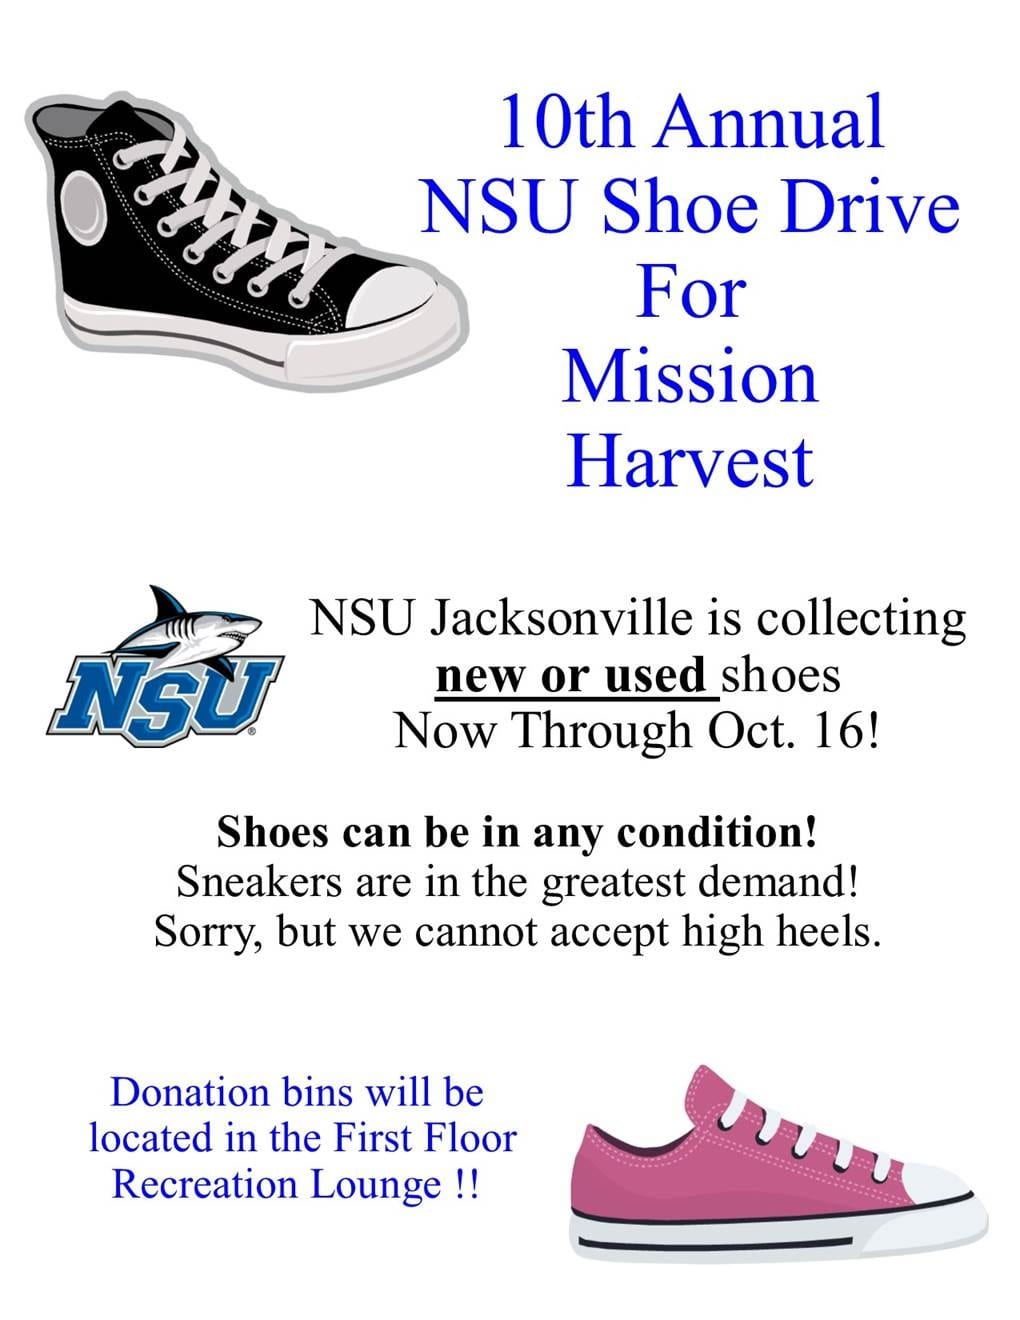 10th Annual NSU Shoe Drive